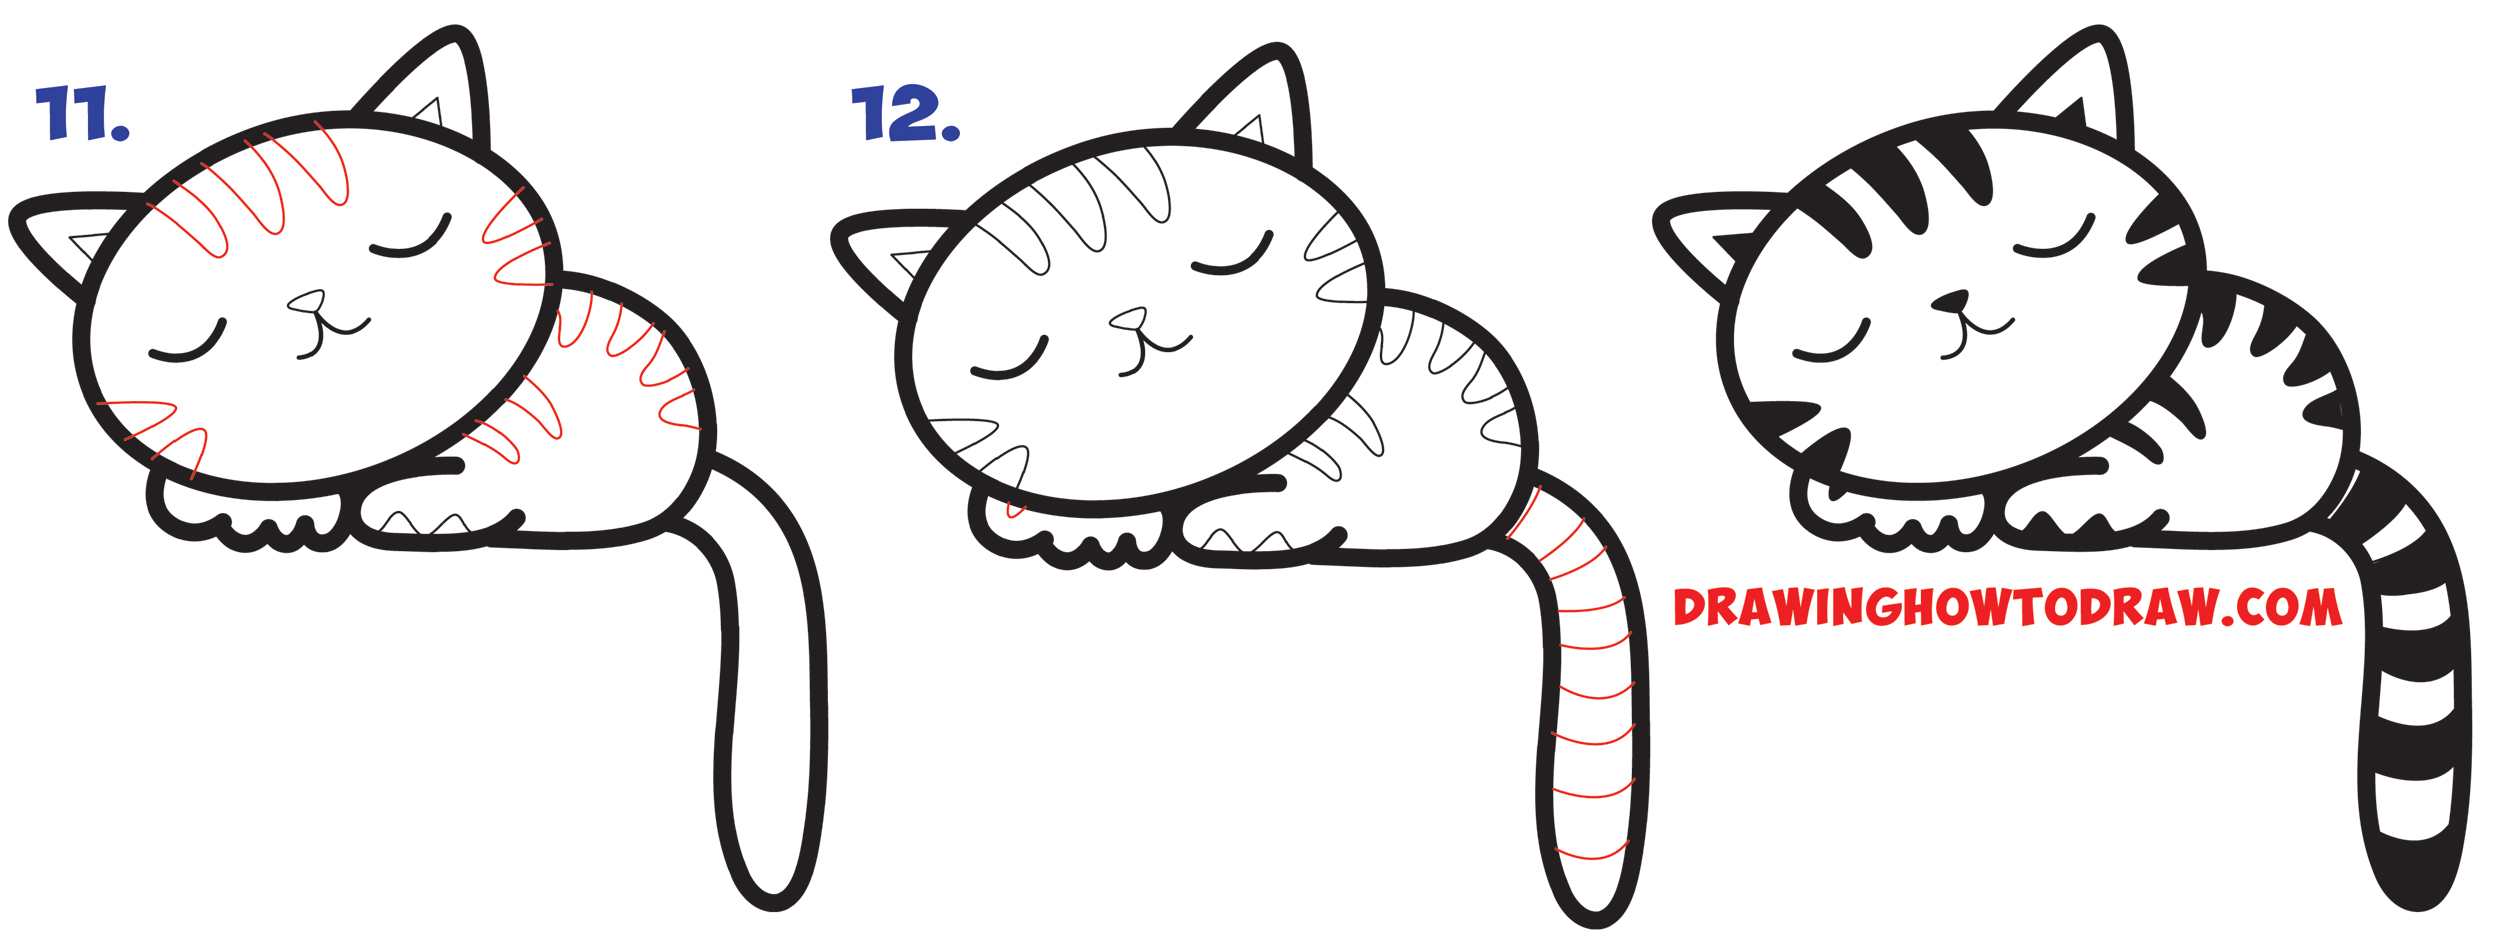 Learn How to Draw a Cute Cartoon Kitten Napping Simple Steps Drawing Lesson for Beginners